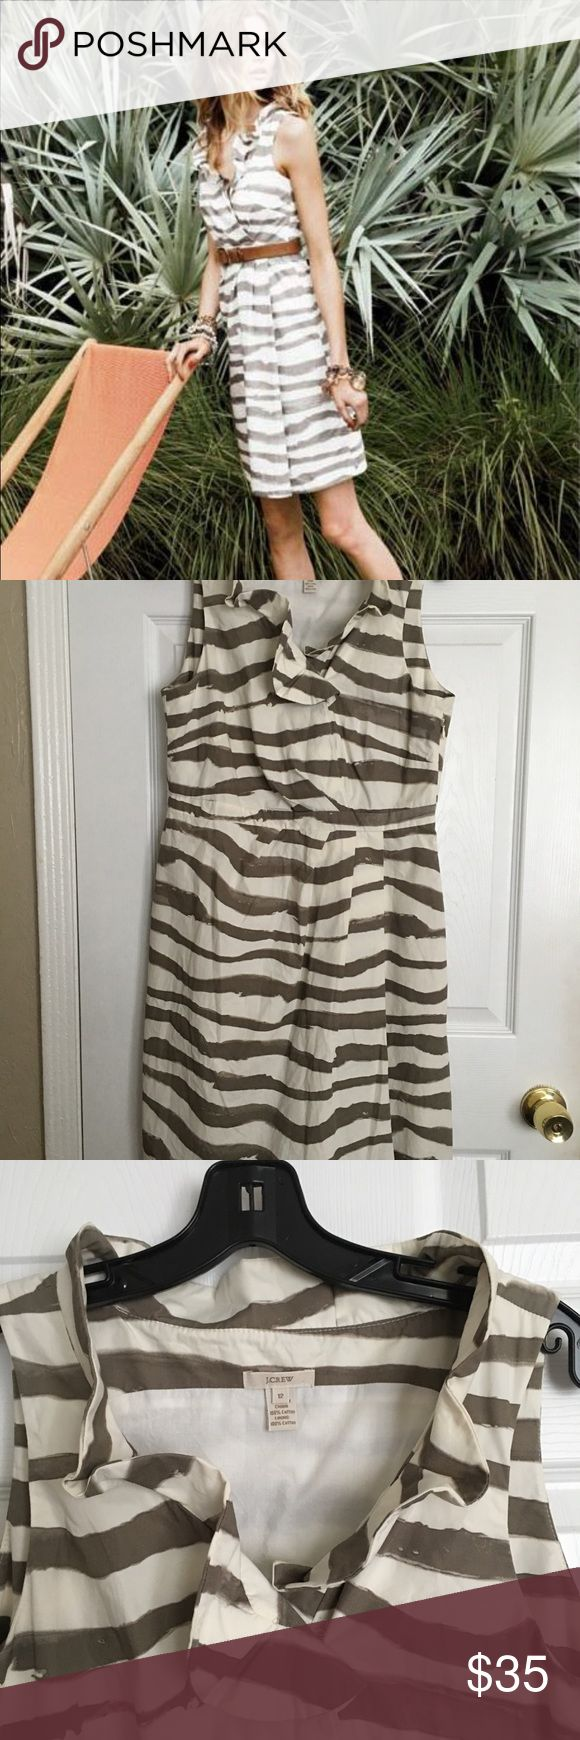 J. Crew zebra print dress Nice zebra printed dress with ruffle neckline and fitted waist. It has a side zipper and a linen lining in the skirt. It's in a great used condition no flaws. 100% cotton dress 100% linen lining J. Crew Dresses